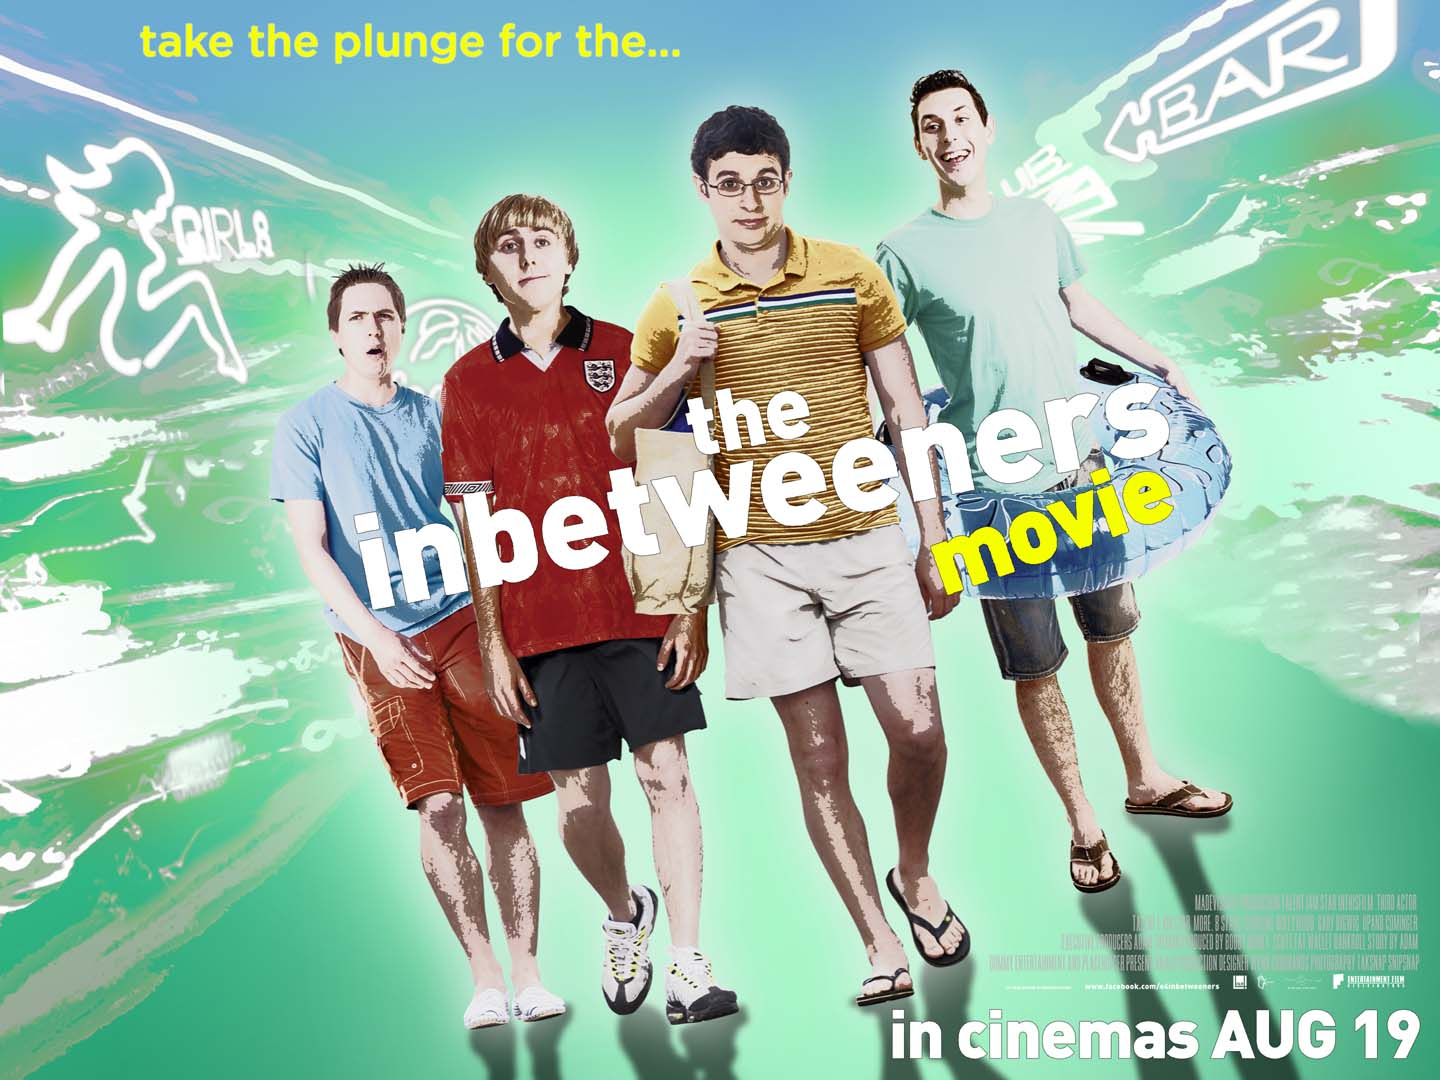 The Inbetweeners MovieEnda McDonagh | Enda McDonagh